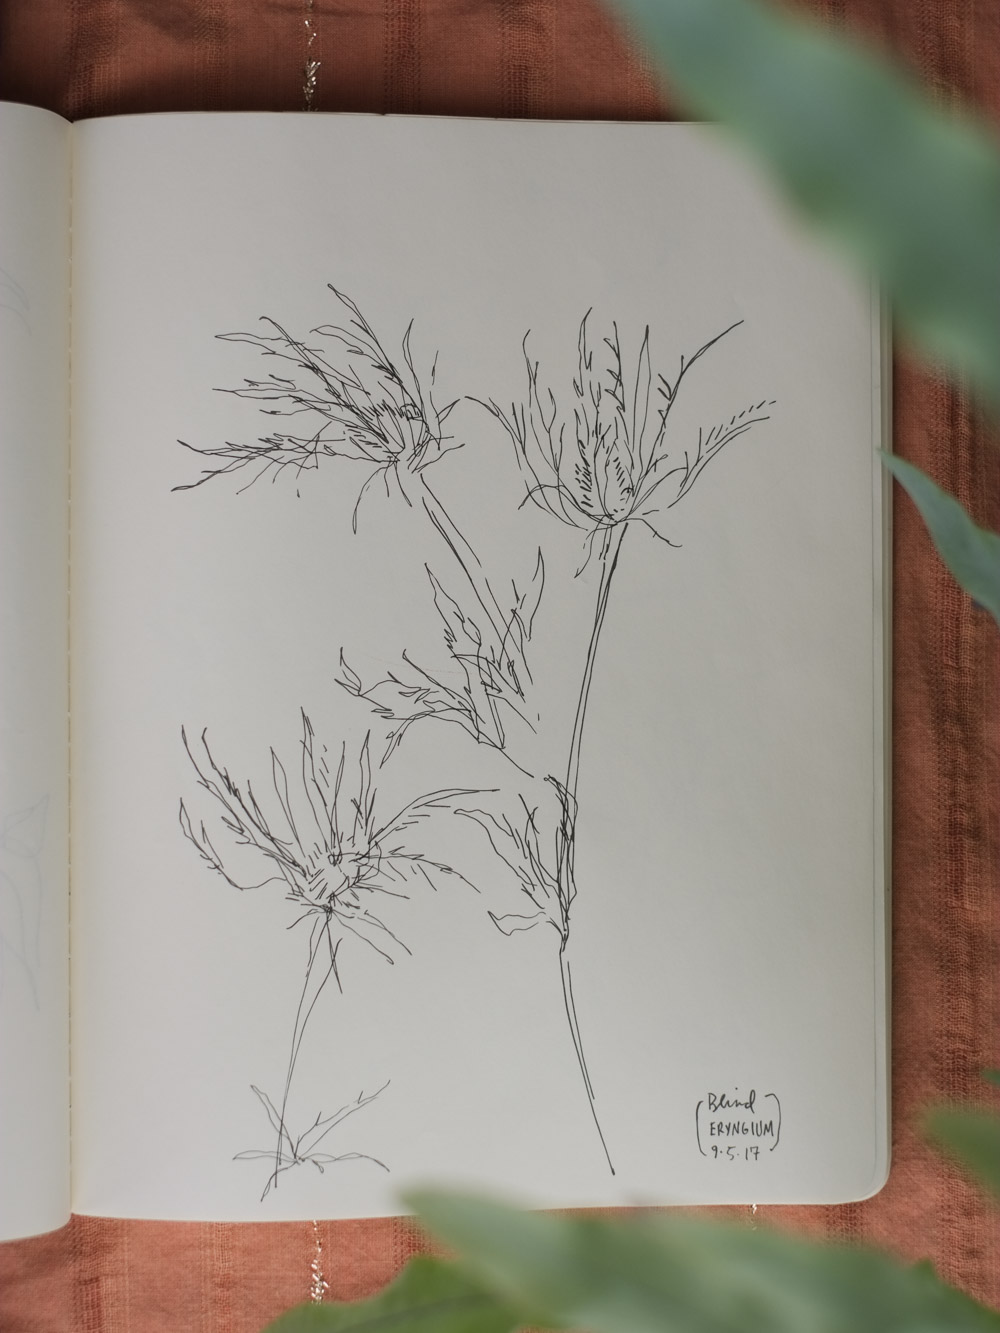 Erin_Ellis_daily_botanical_blind_drawings_sept_2017.jpg-5.jpg